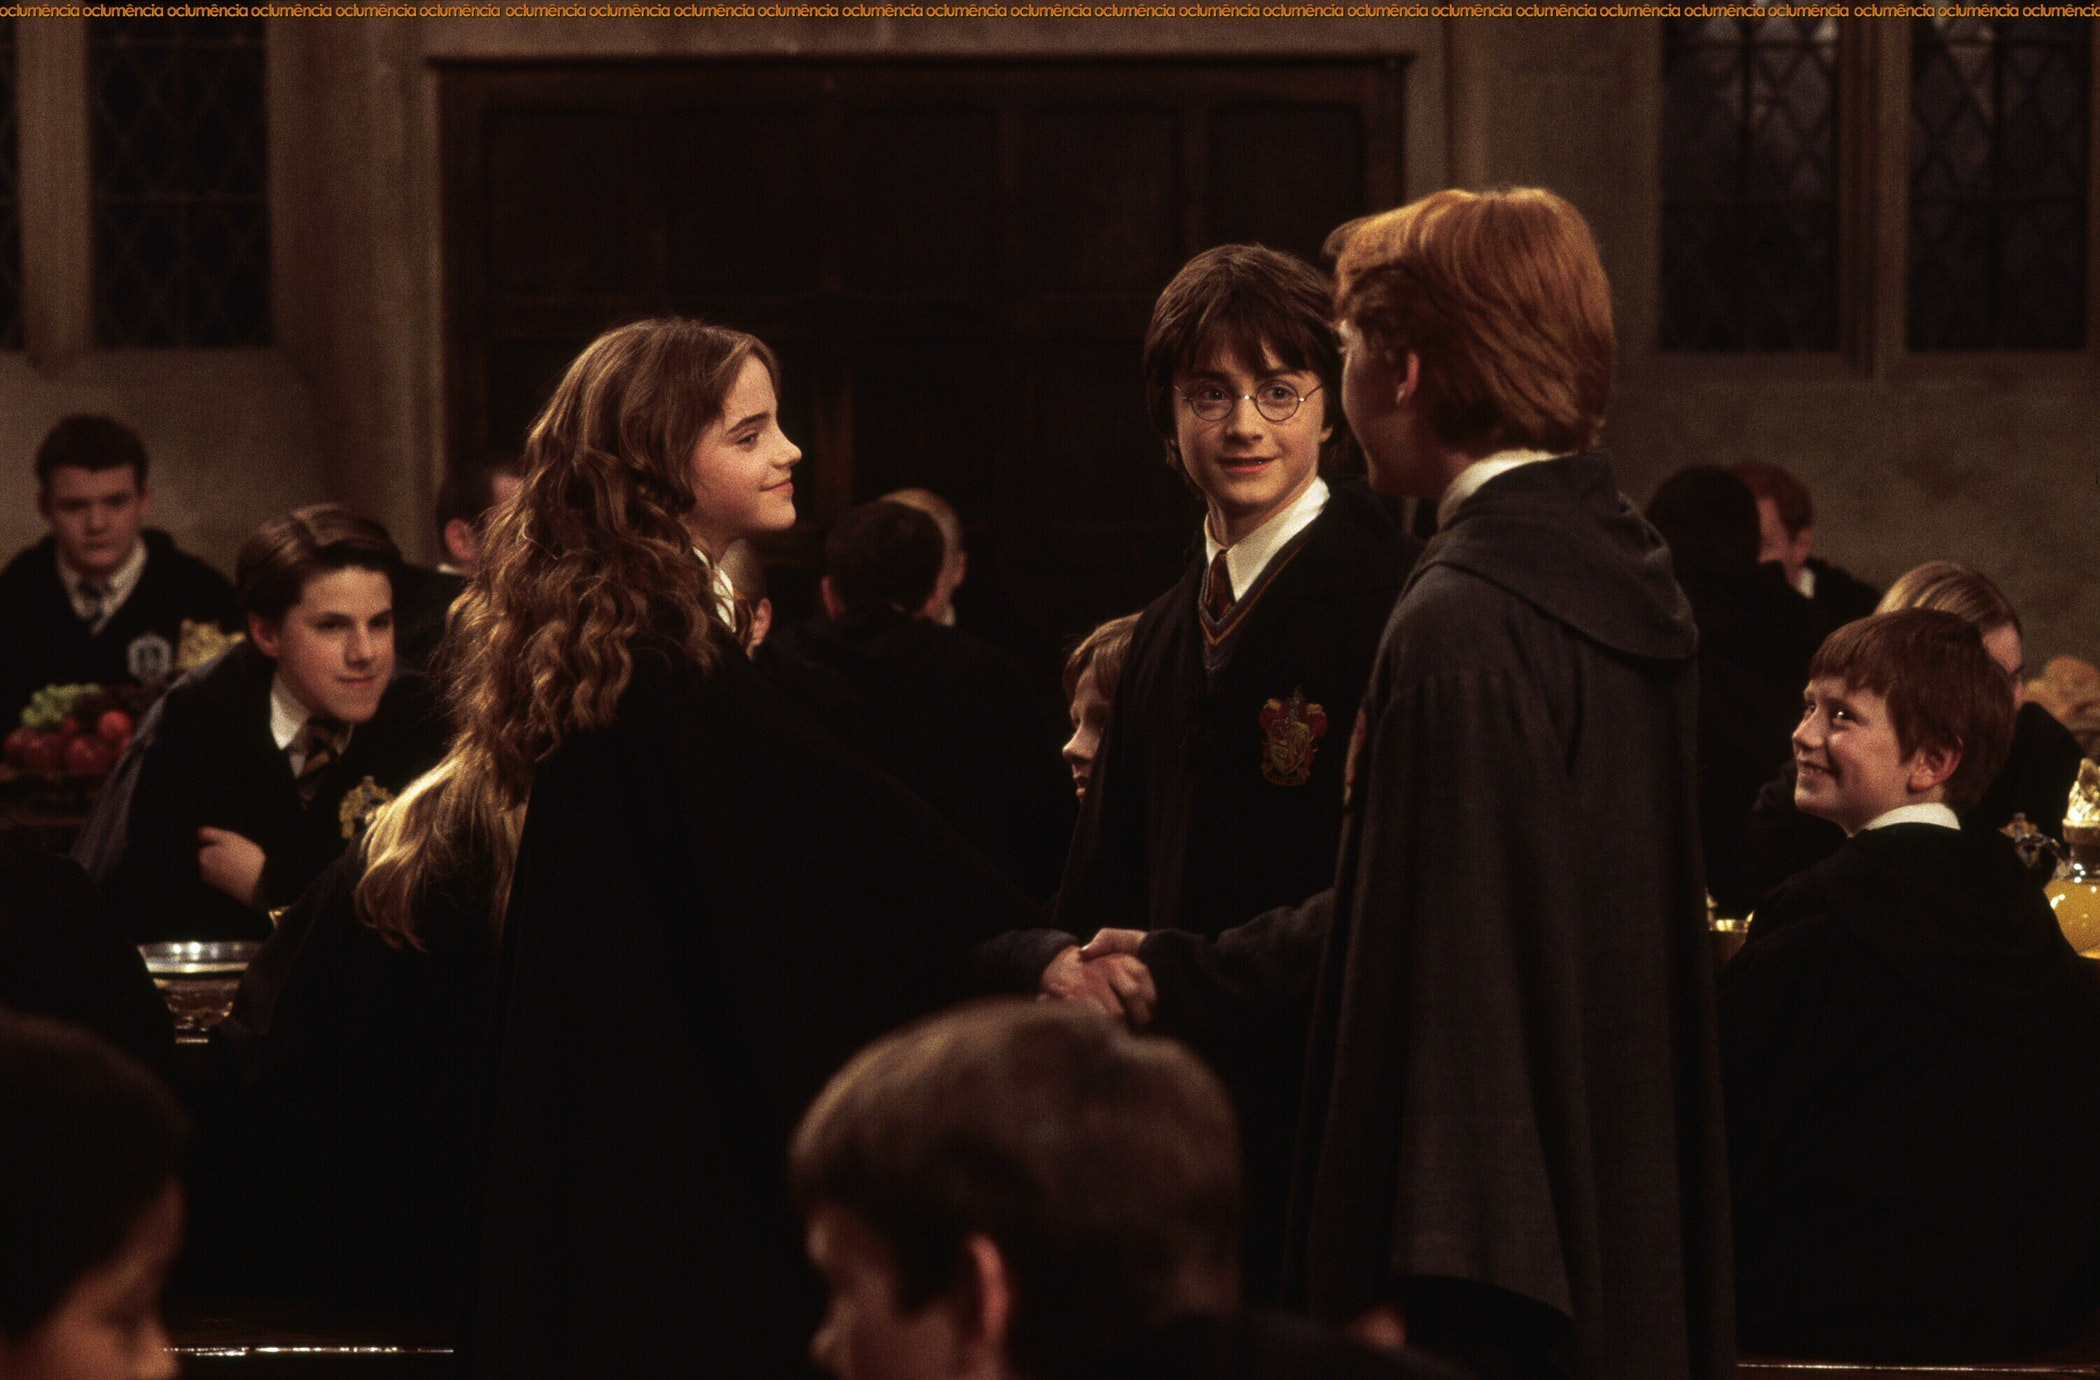 full movie of harry potter and the chamber of secrets